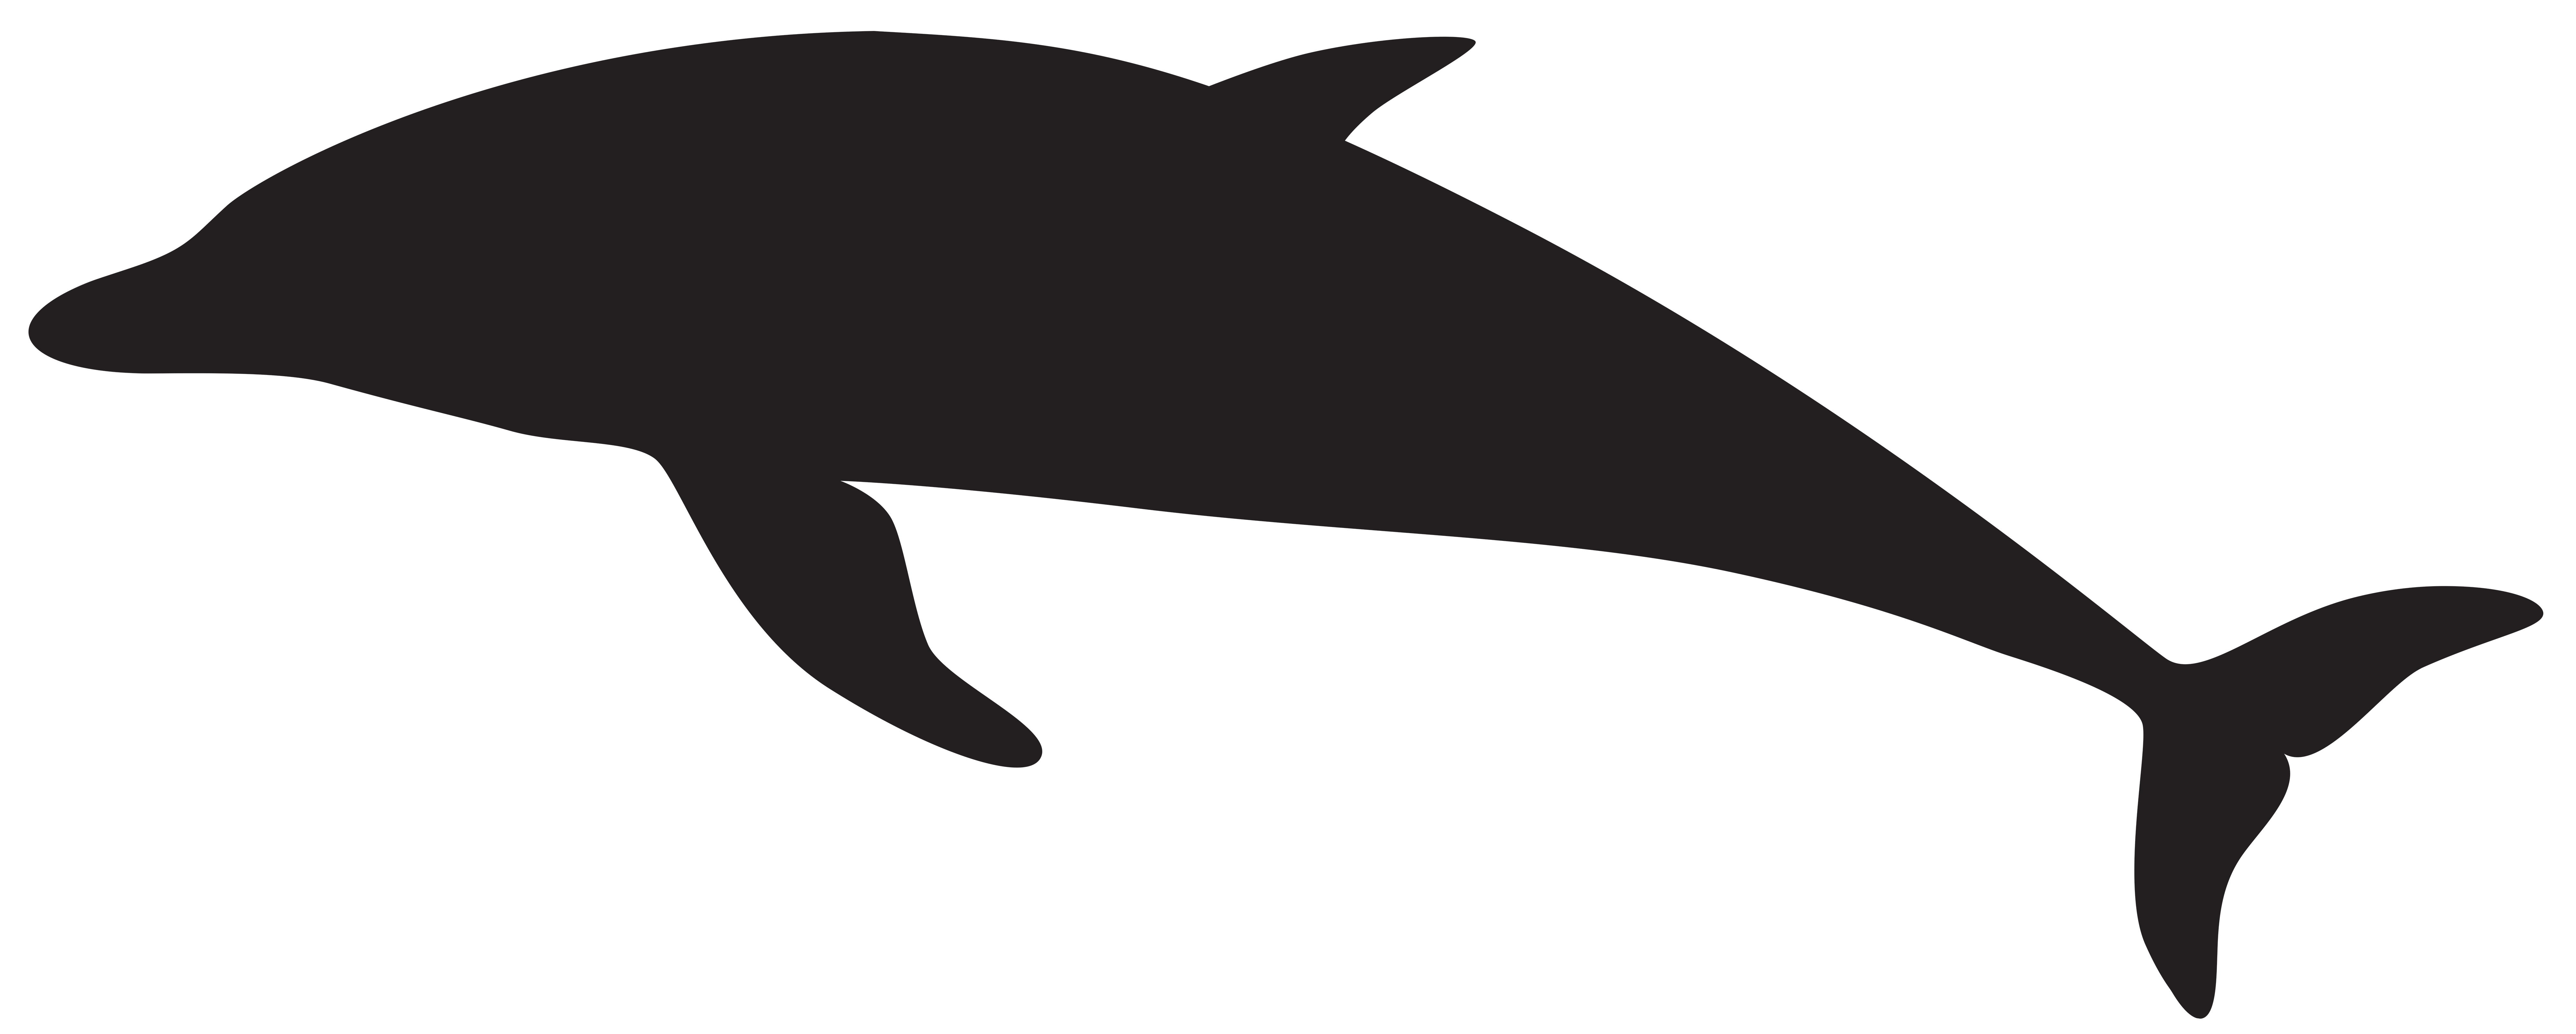 Silhouette png clip art. Hearts clipart dolphin